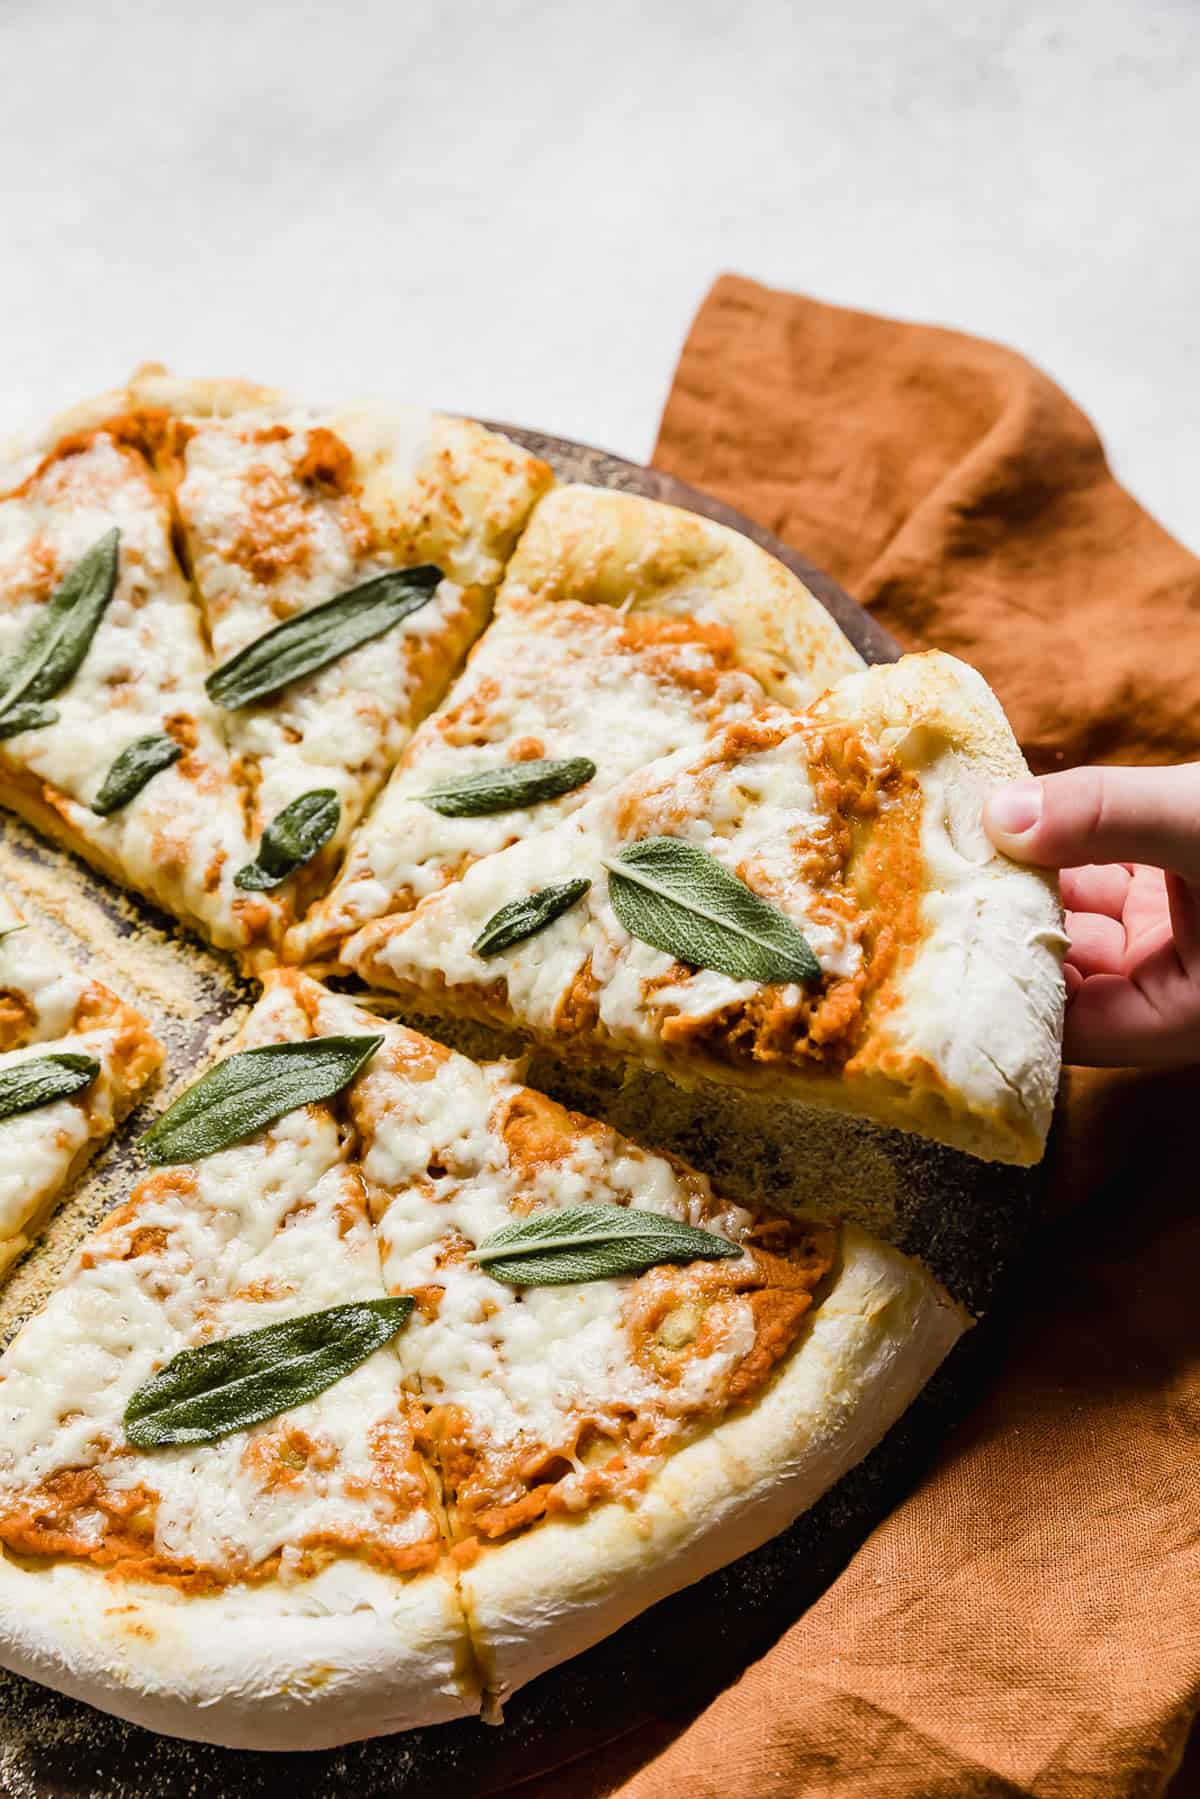 A hand pulling a slice of Pumpkin Pizza from the large pizza.